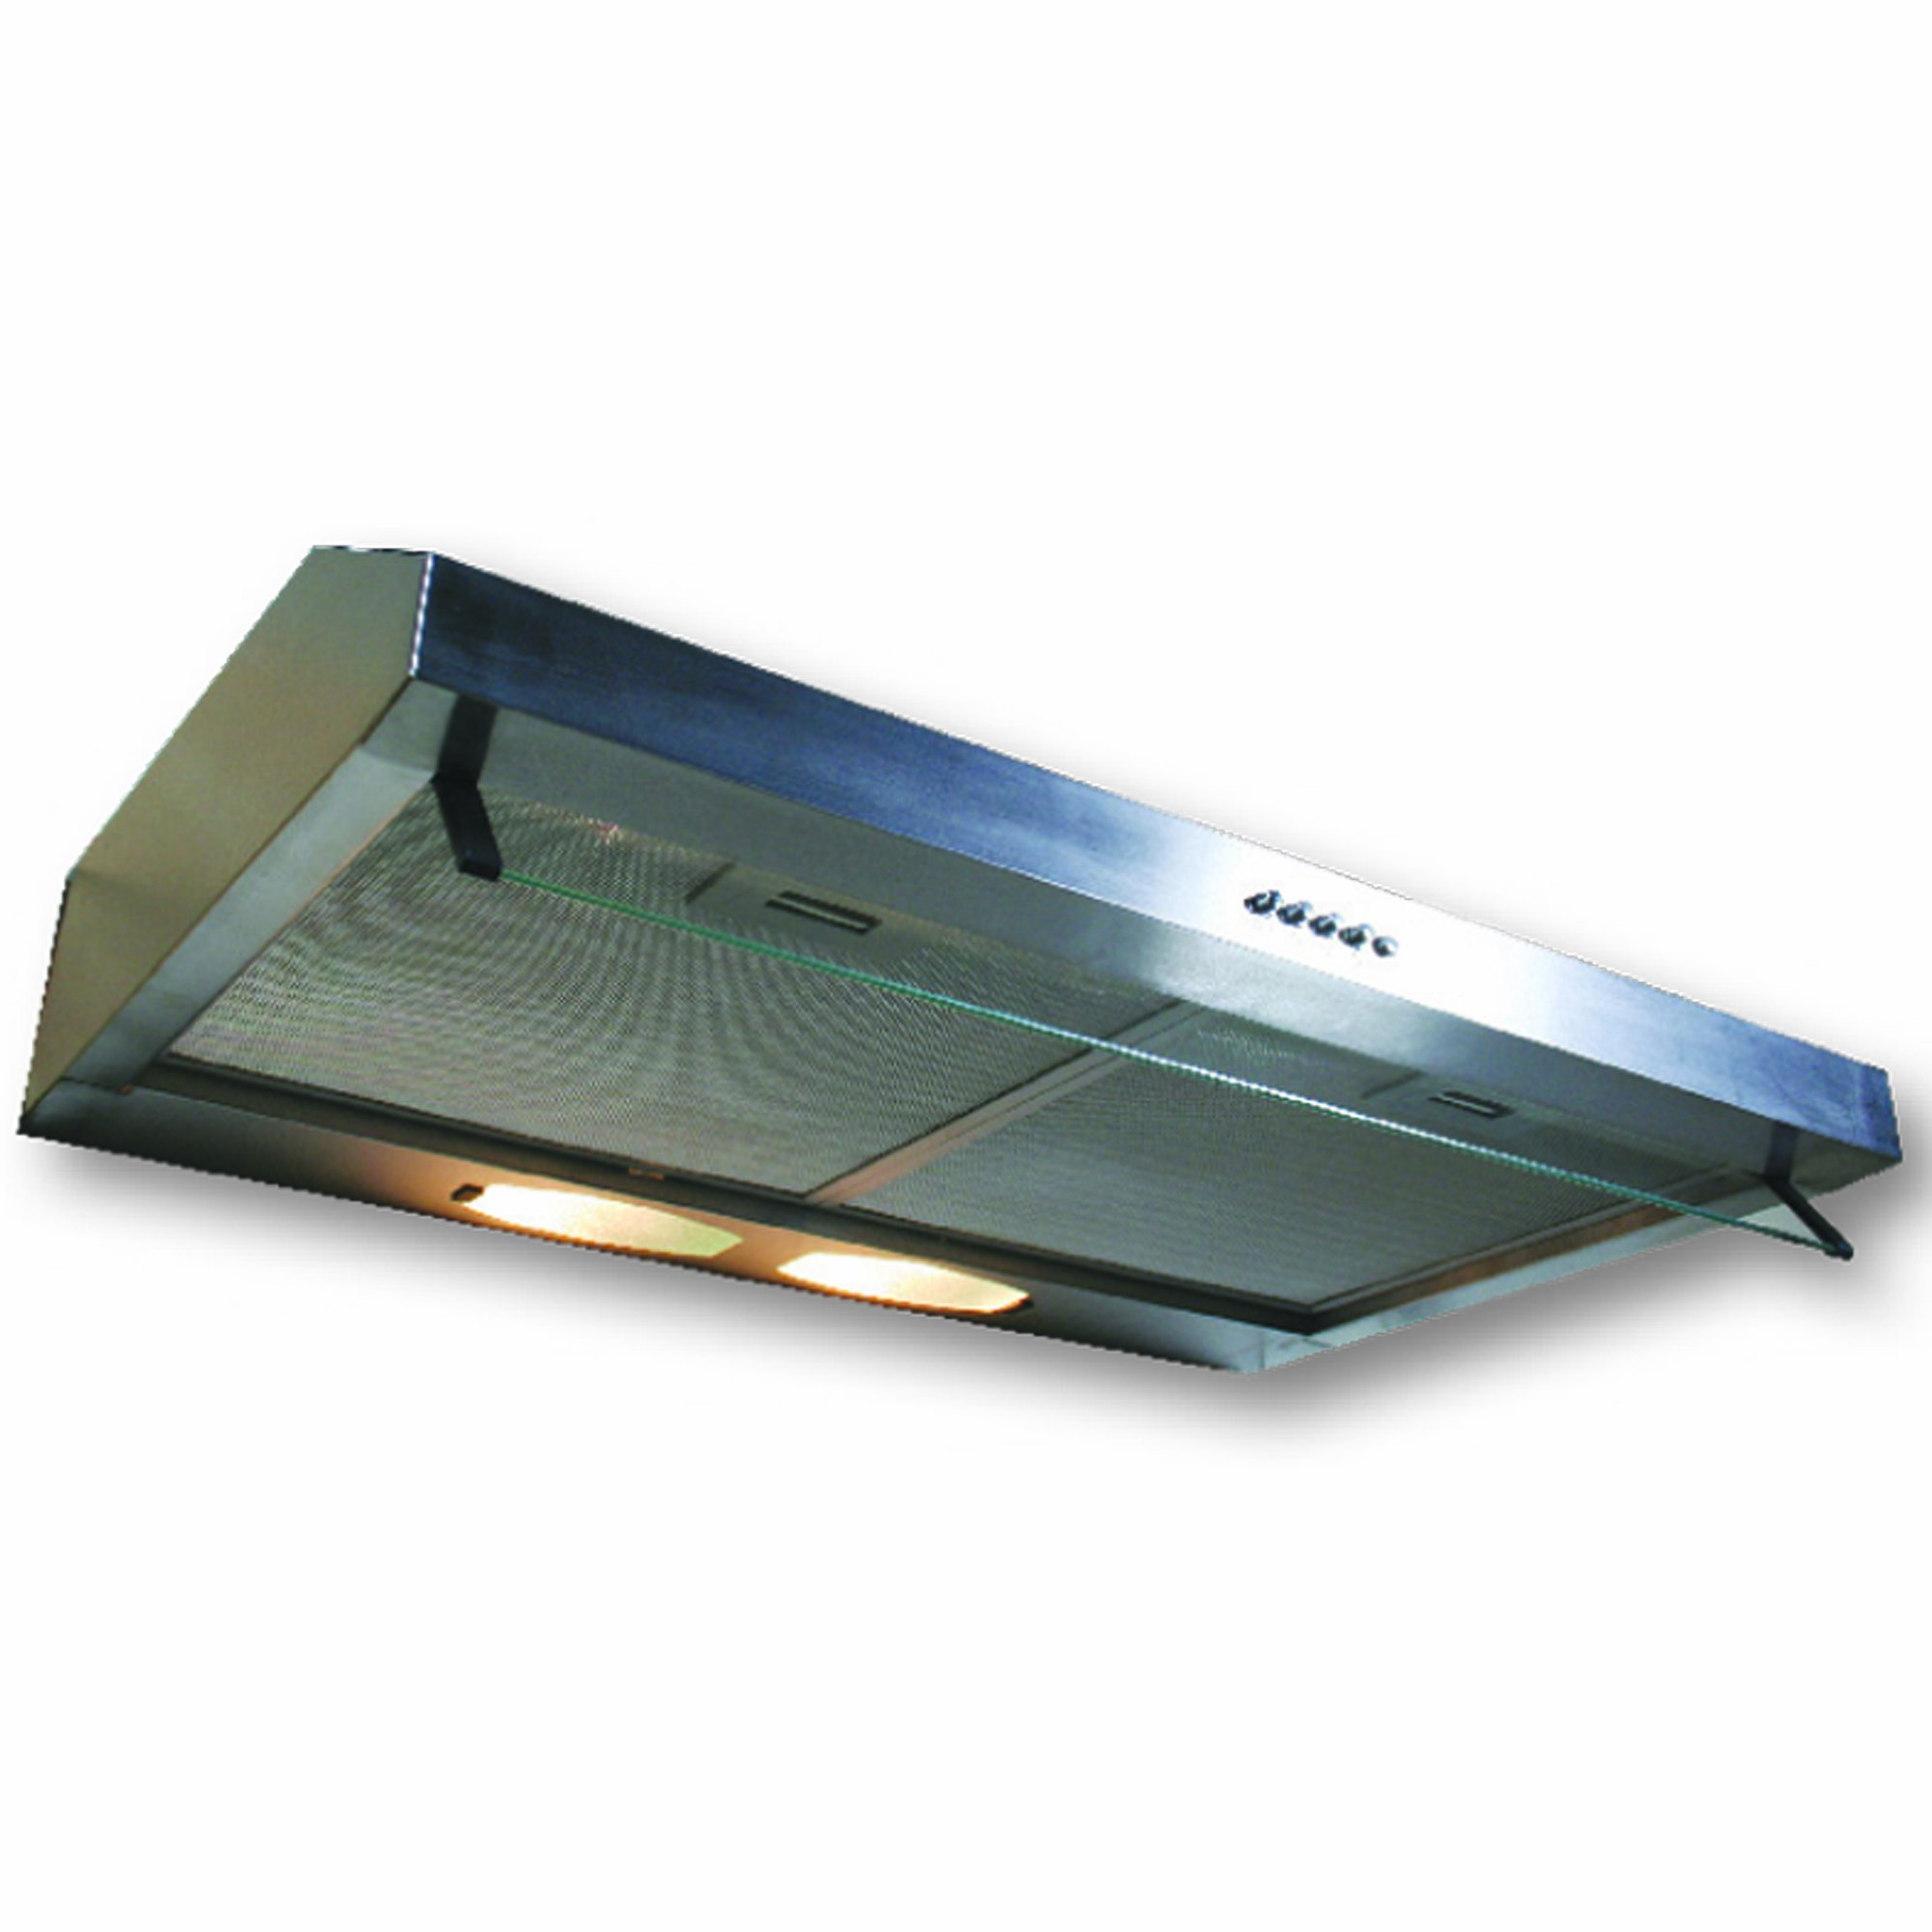 Yosemite Home Decor BWRS30S Builder Series Undercabinet Hood, 30-Inch, Stainless Steel by Yosemite Home Decor